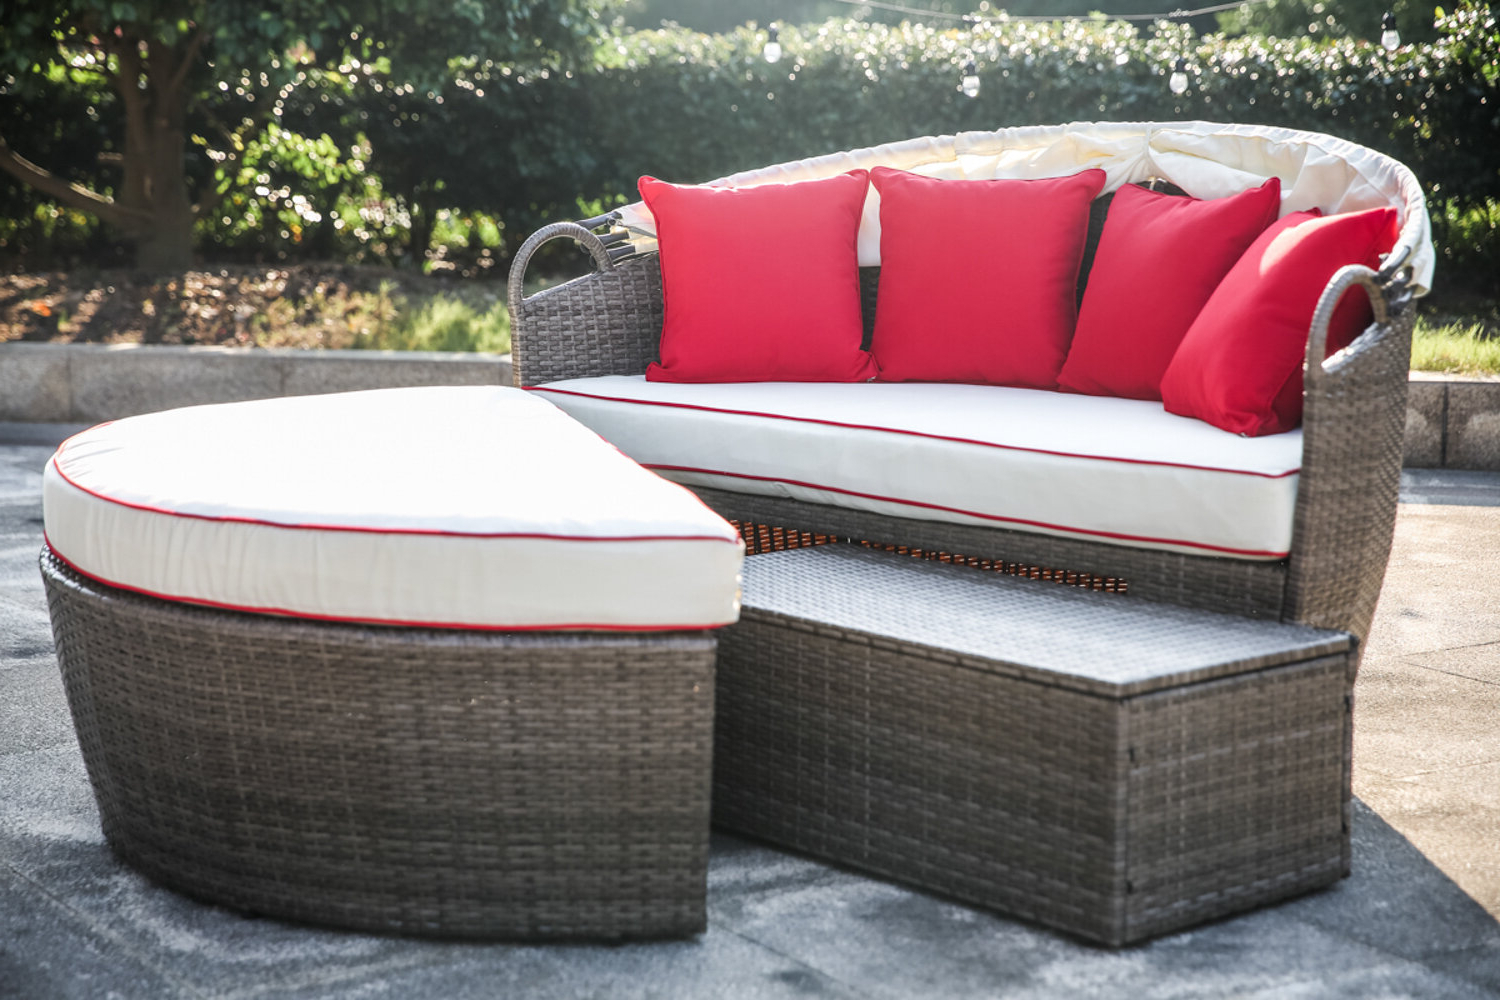 Fansler Patio Daybed With Cushions With Regard To Newest Ellanti Teak Patio Daybeds With Cushions (View 9 of 20)